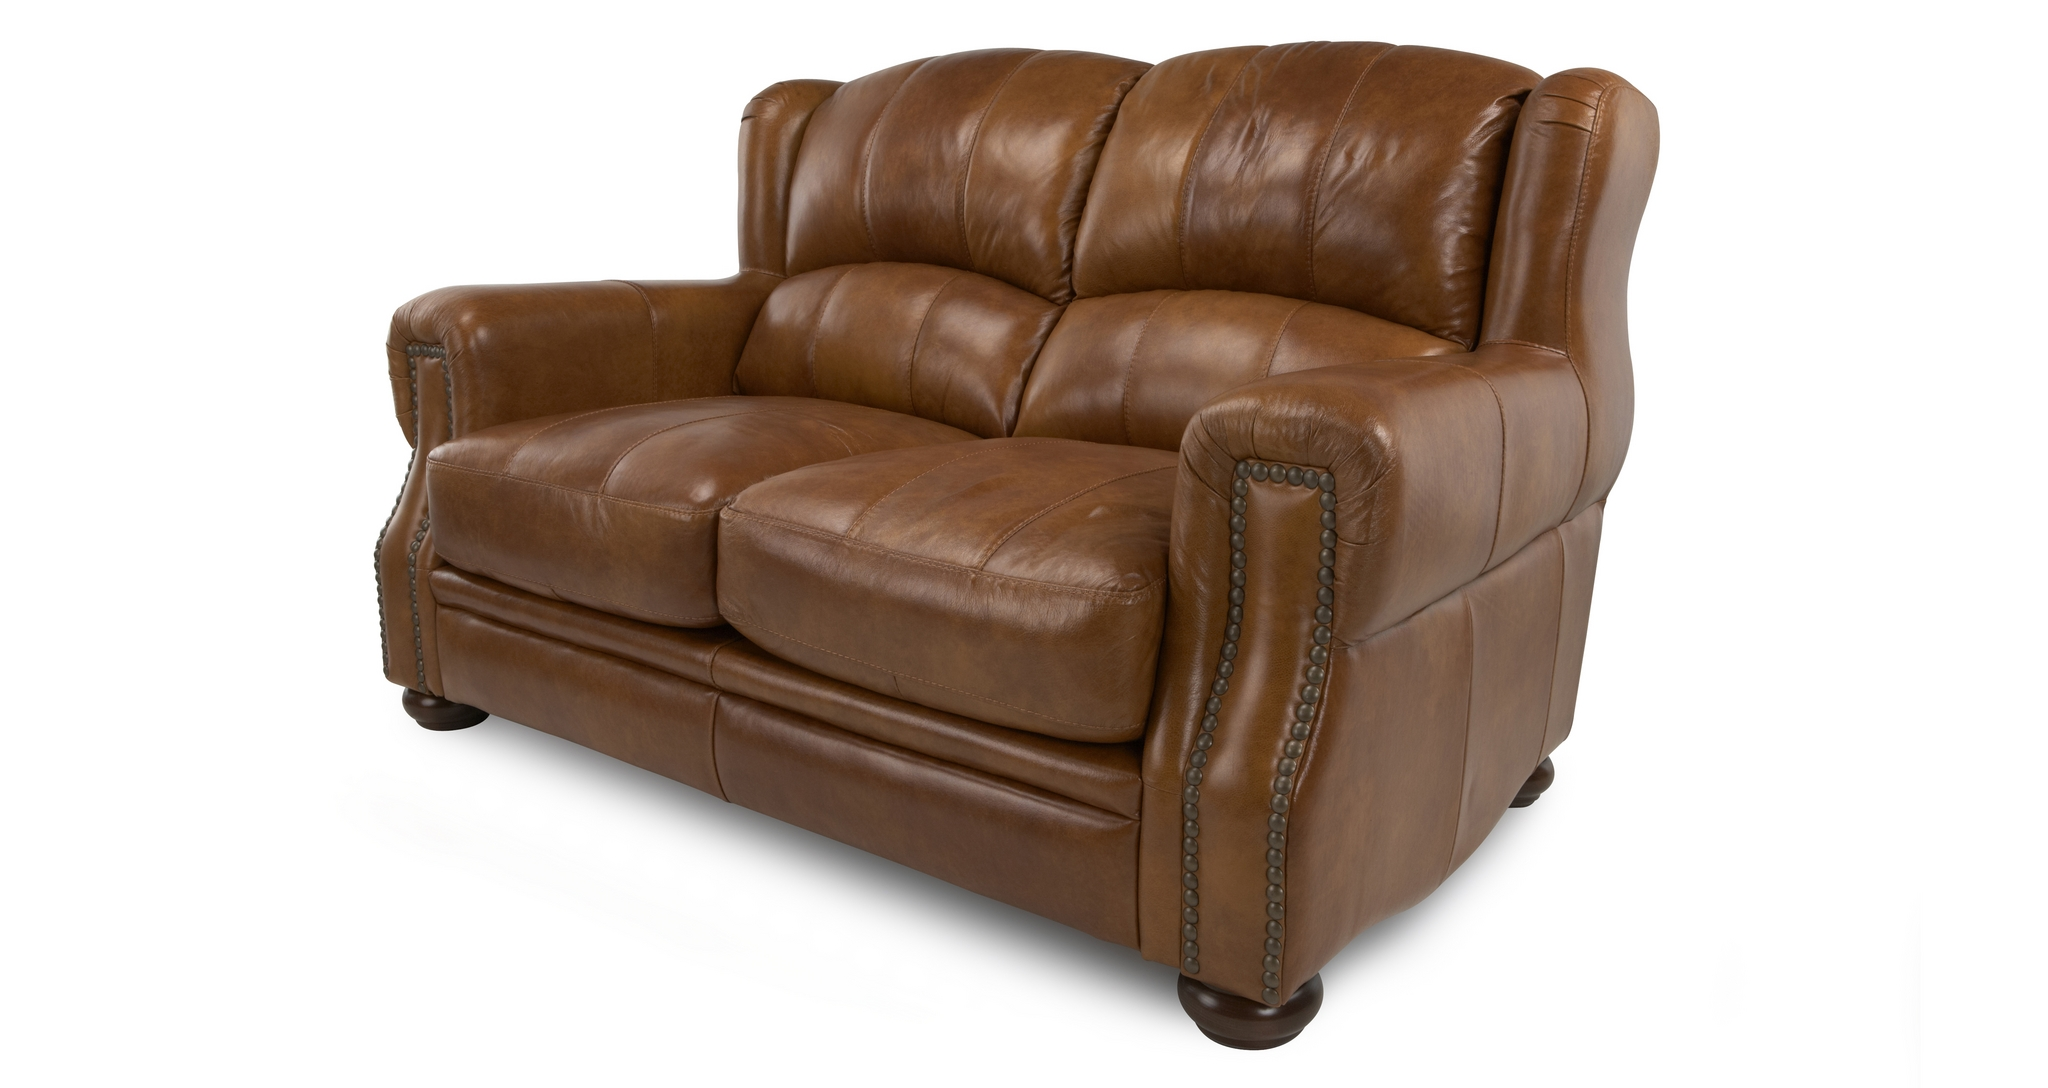 Dfs Hale Natural Leather Chestnut Brown Suite 2 Seater